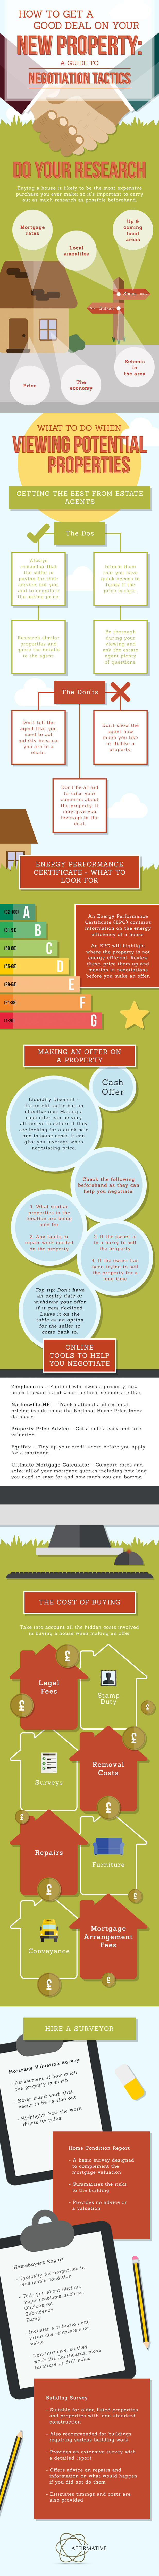 How to get a good deal on your property: a guide to negotiation tactics